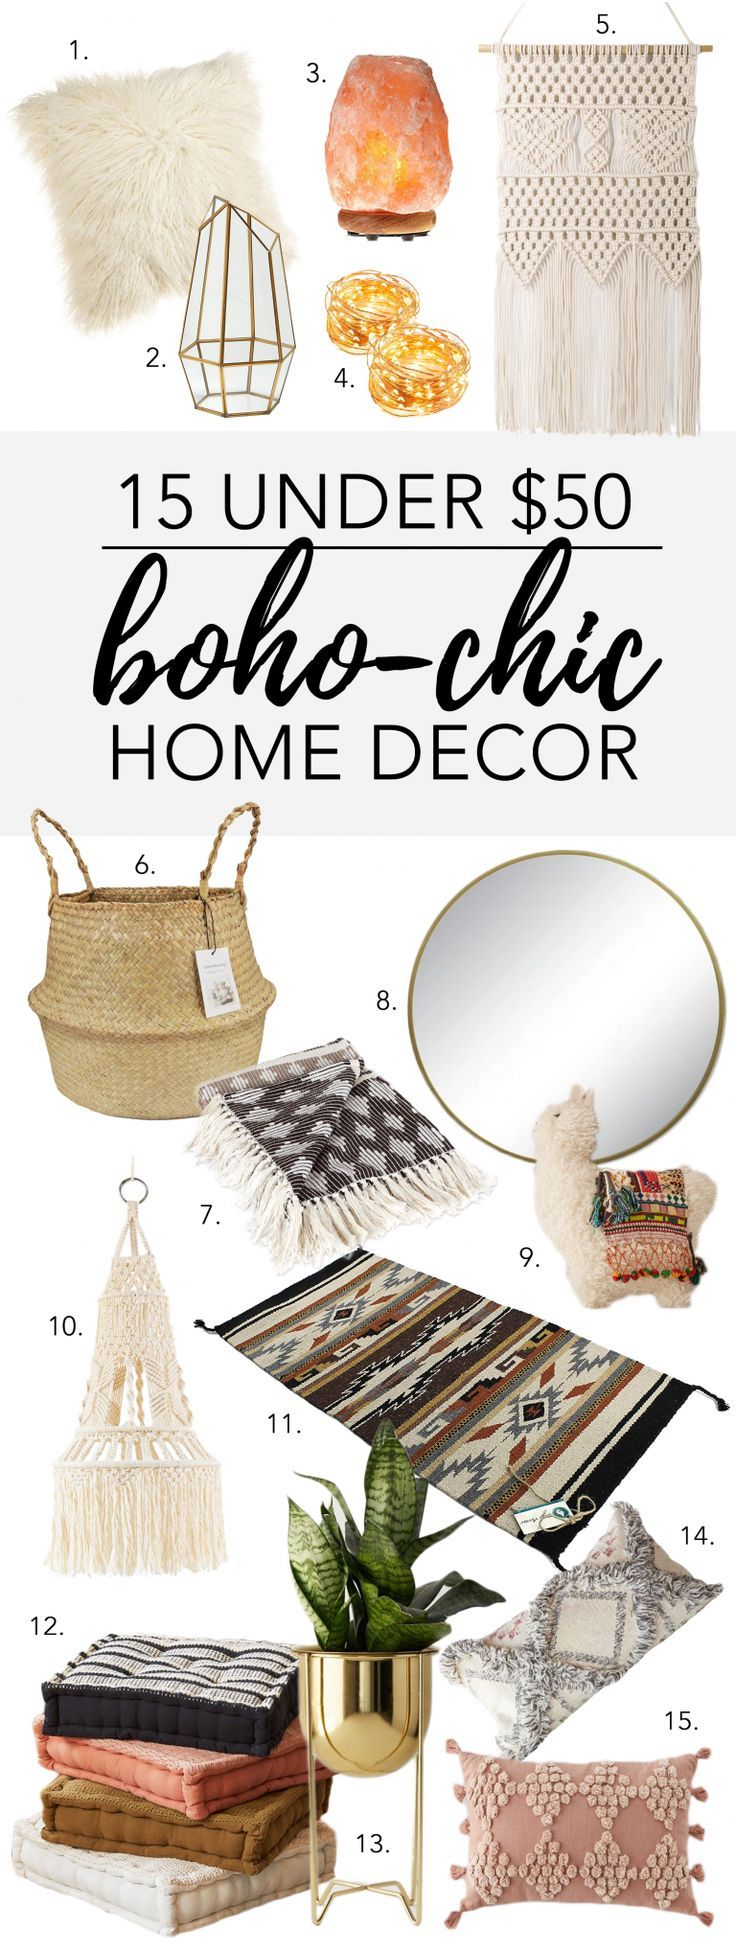 Photo of 15 UNDER $50: BOHO-CHIC HOME DECOR